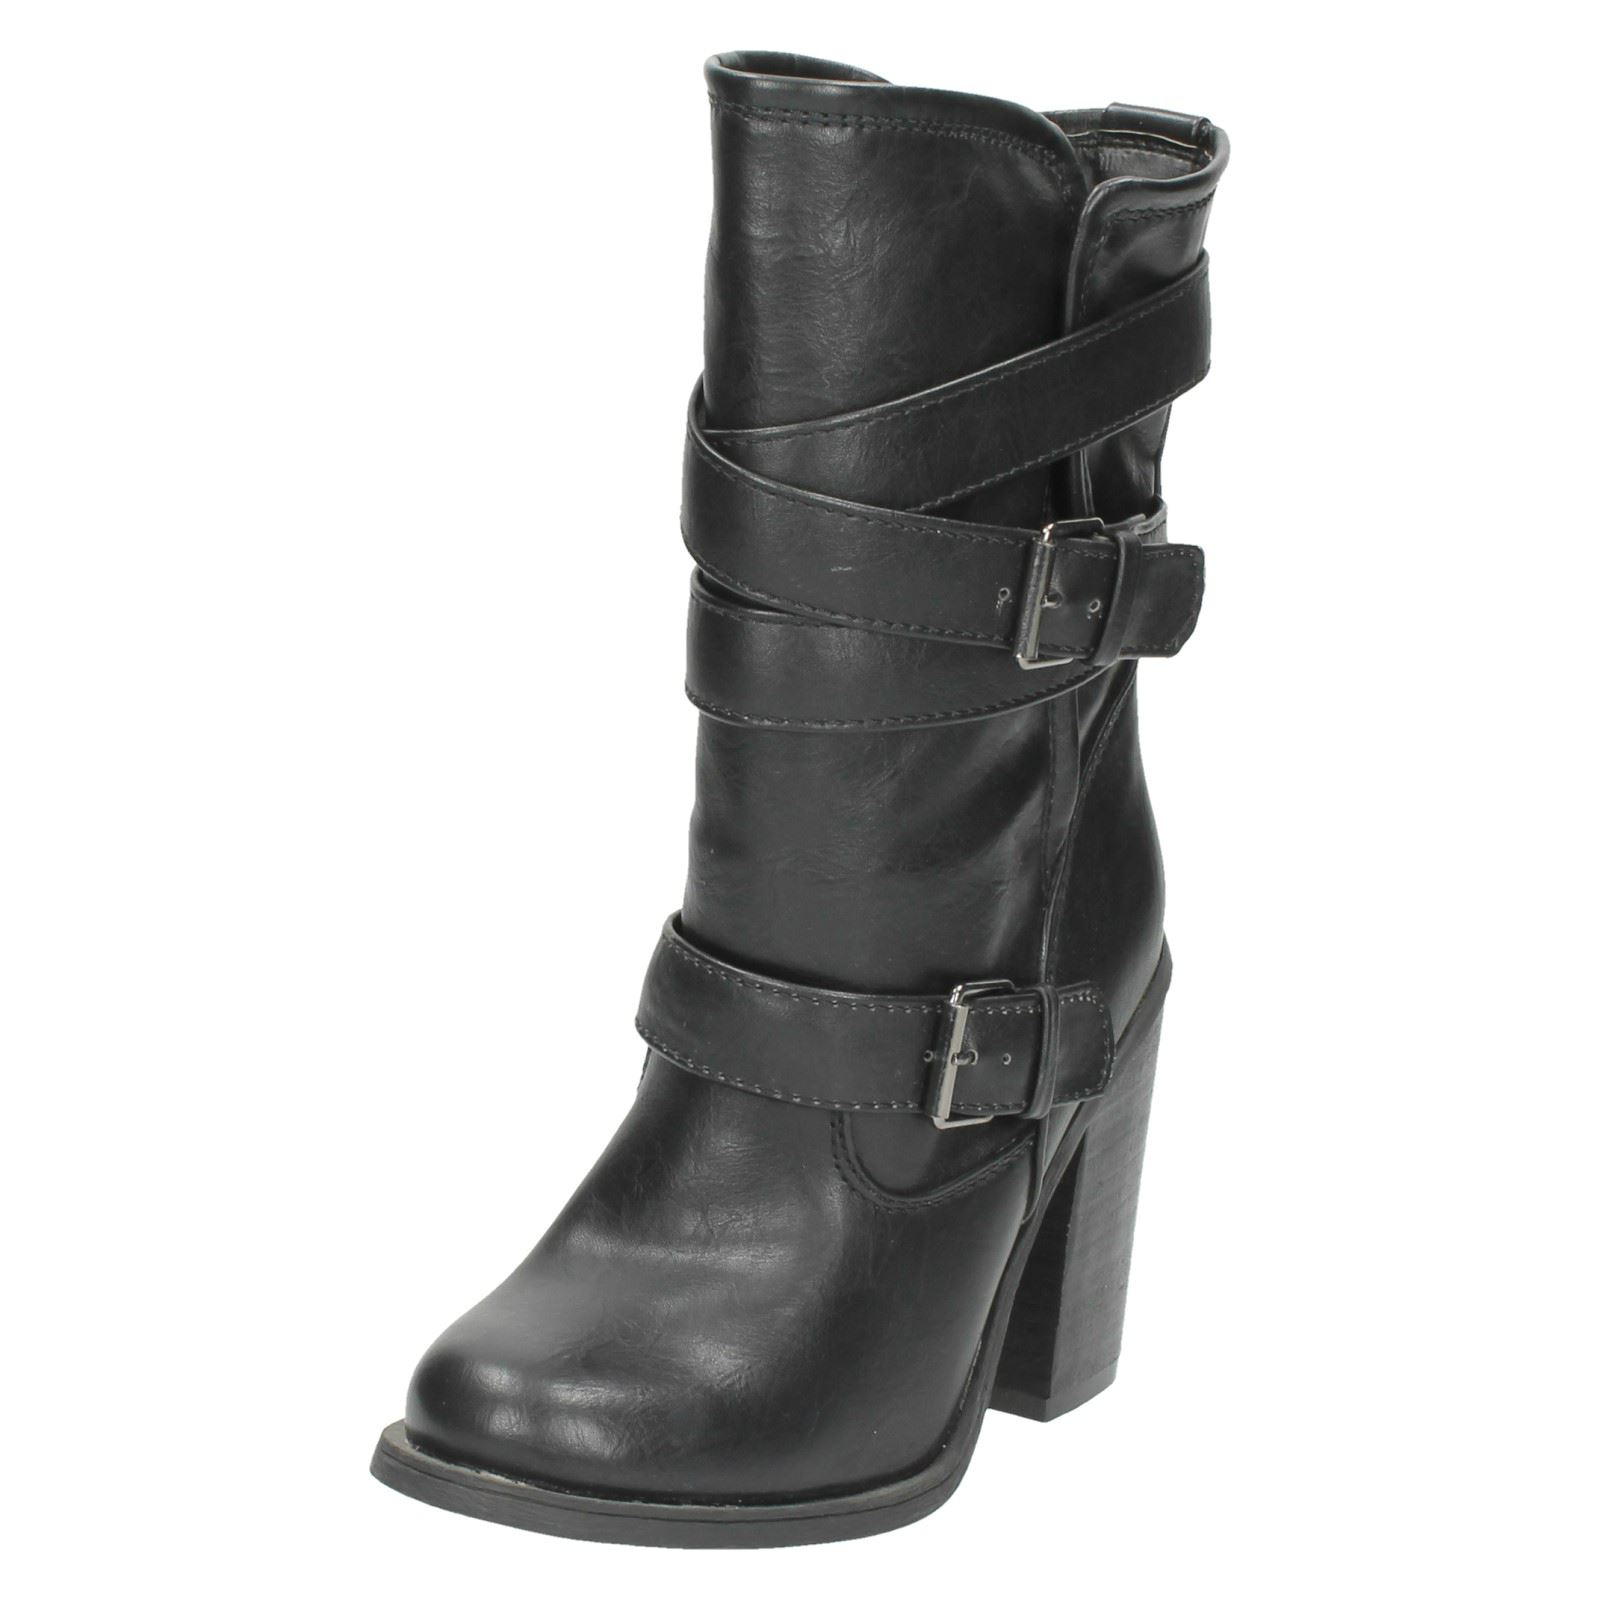 Ladies Spot on Mid Calf Length BOOTS With Block Heel - F5929 7 UK ... afdfd37faa